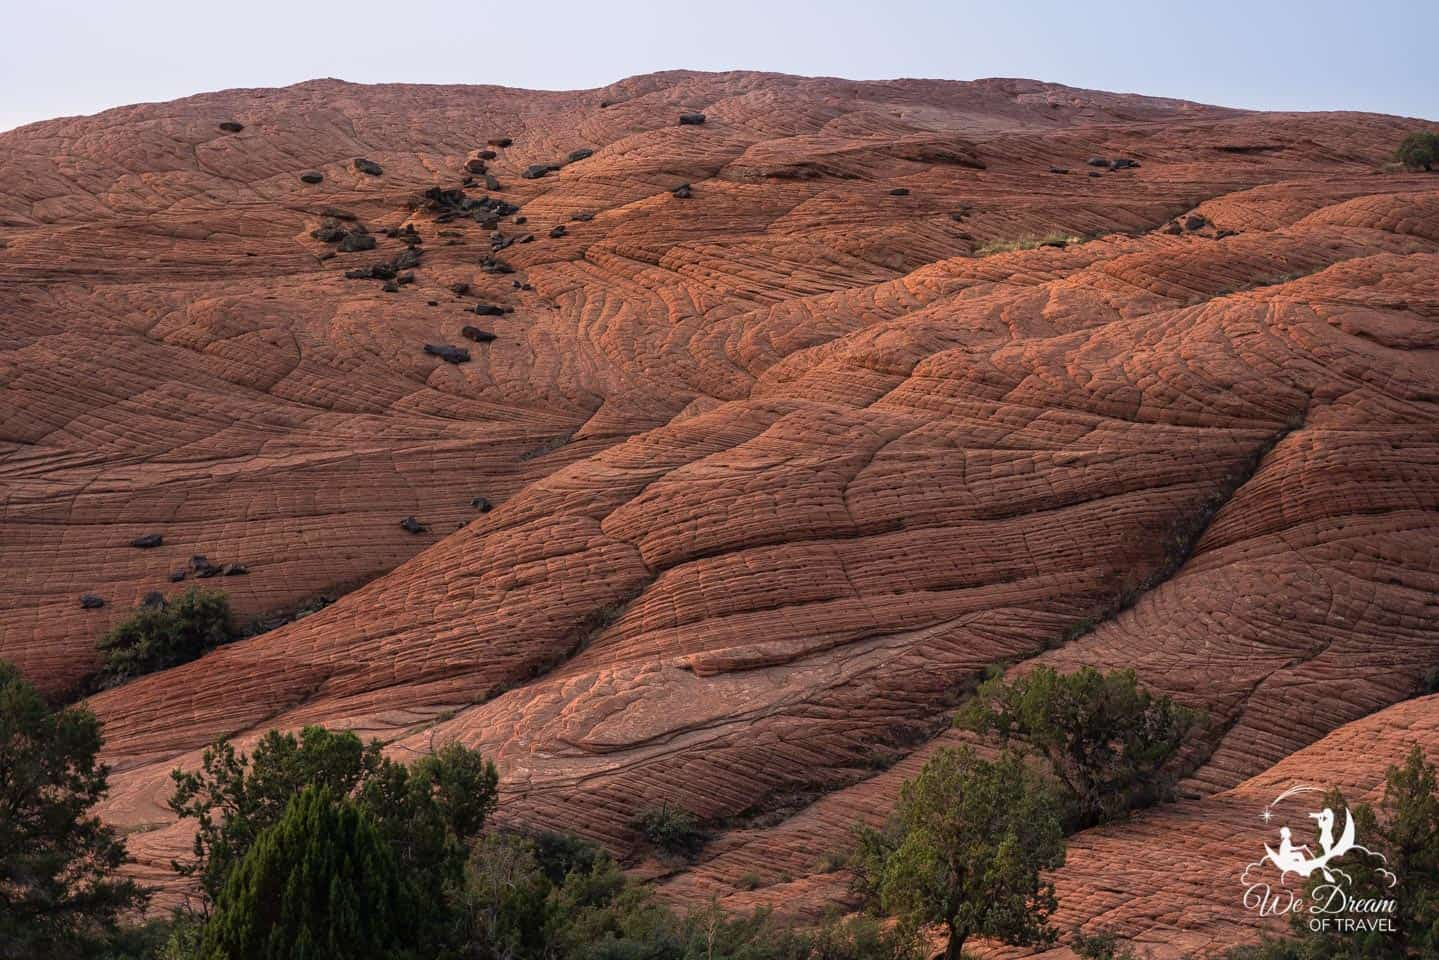 Petrified Sand Dunes create swirling rock patterns at Snow Canyon State Park